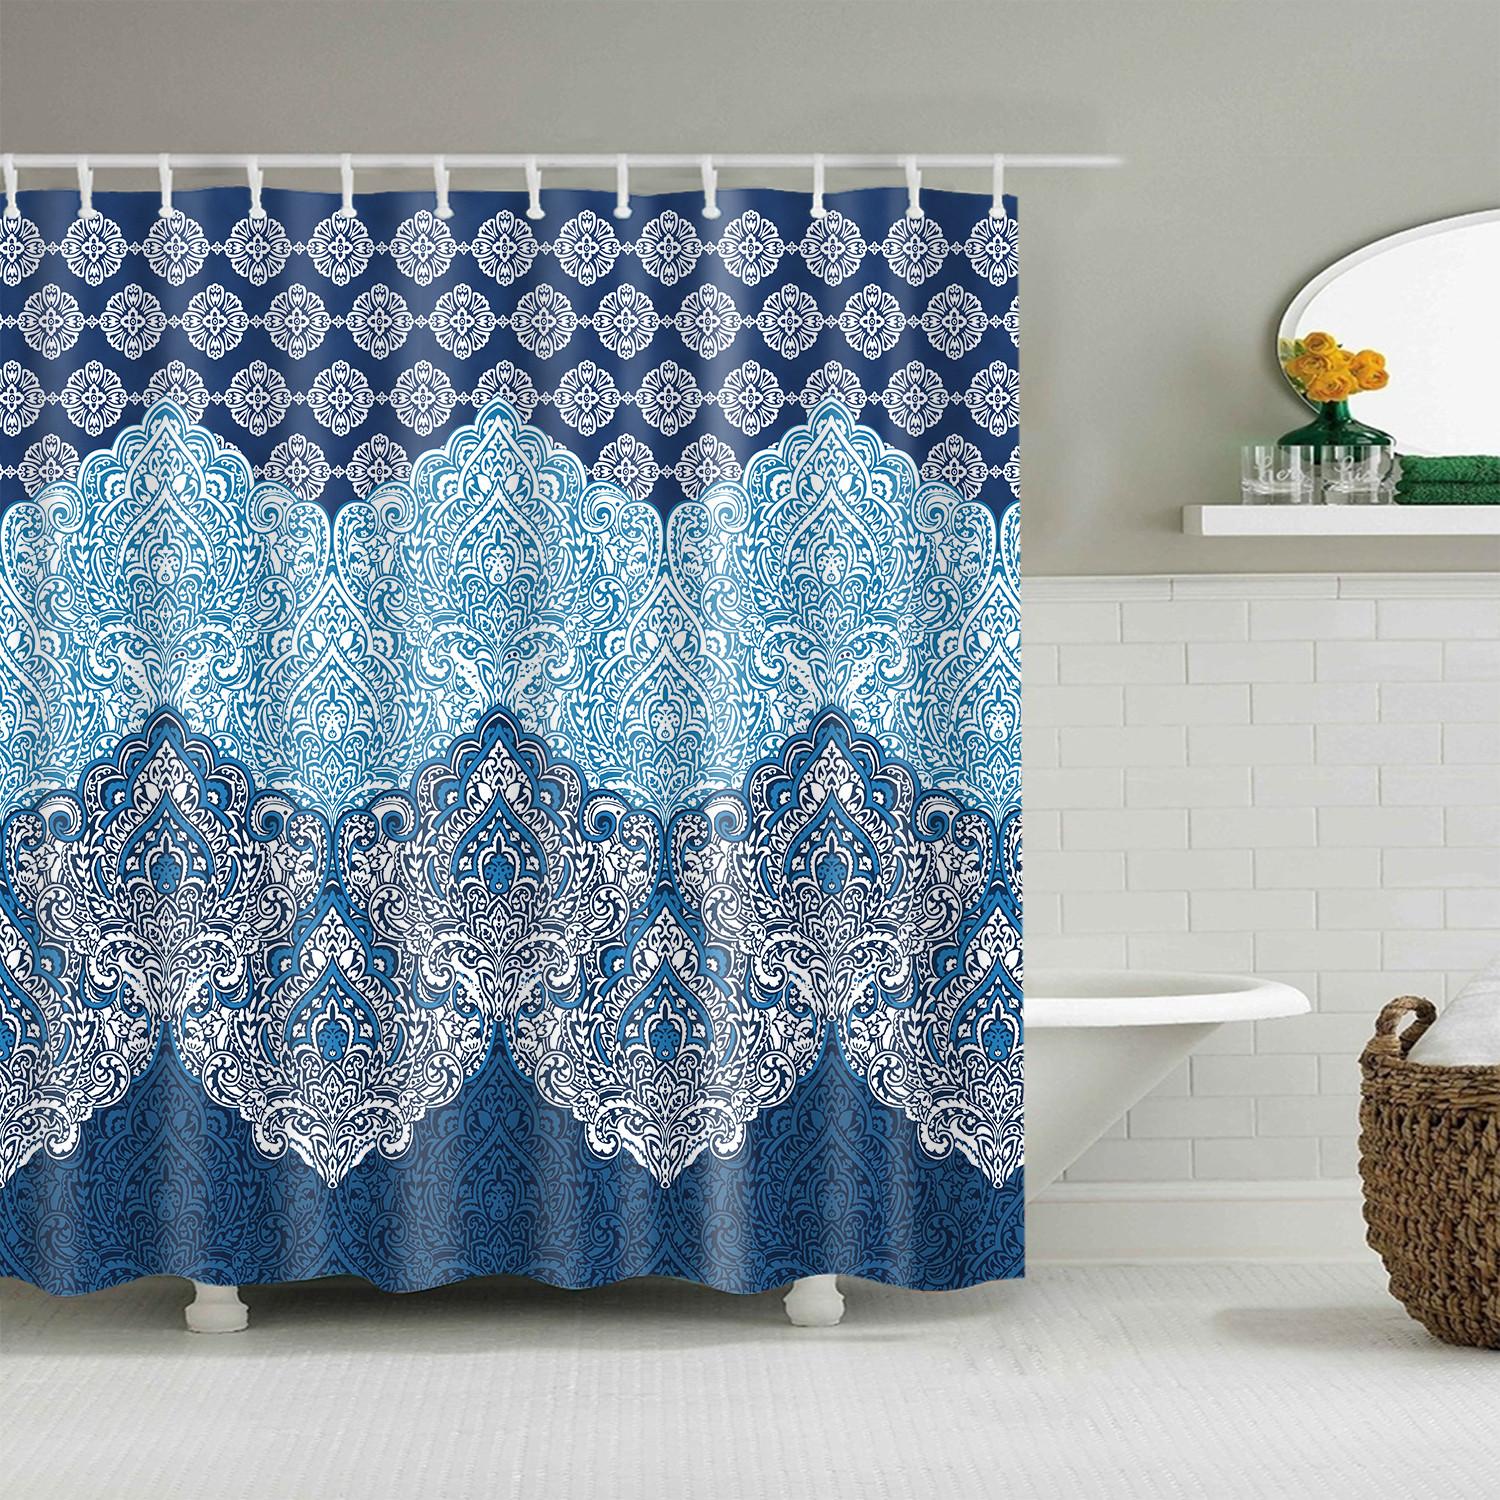 Waterproof Shower Curtain Home Bathroom Extra Long <font><b>150*200</b></font> cm blackout Mandala bath curtain For Bathroom cortinas de bano image